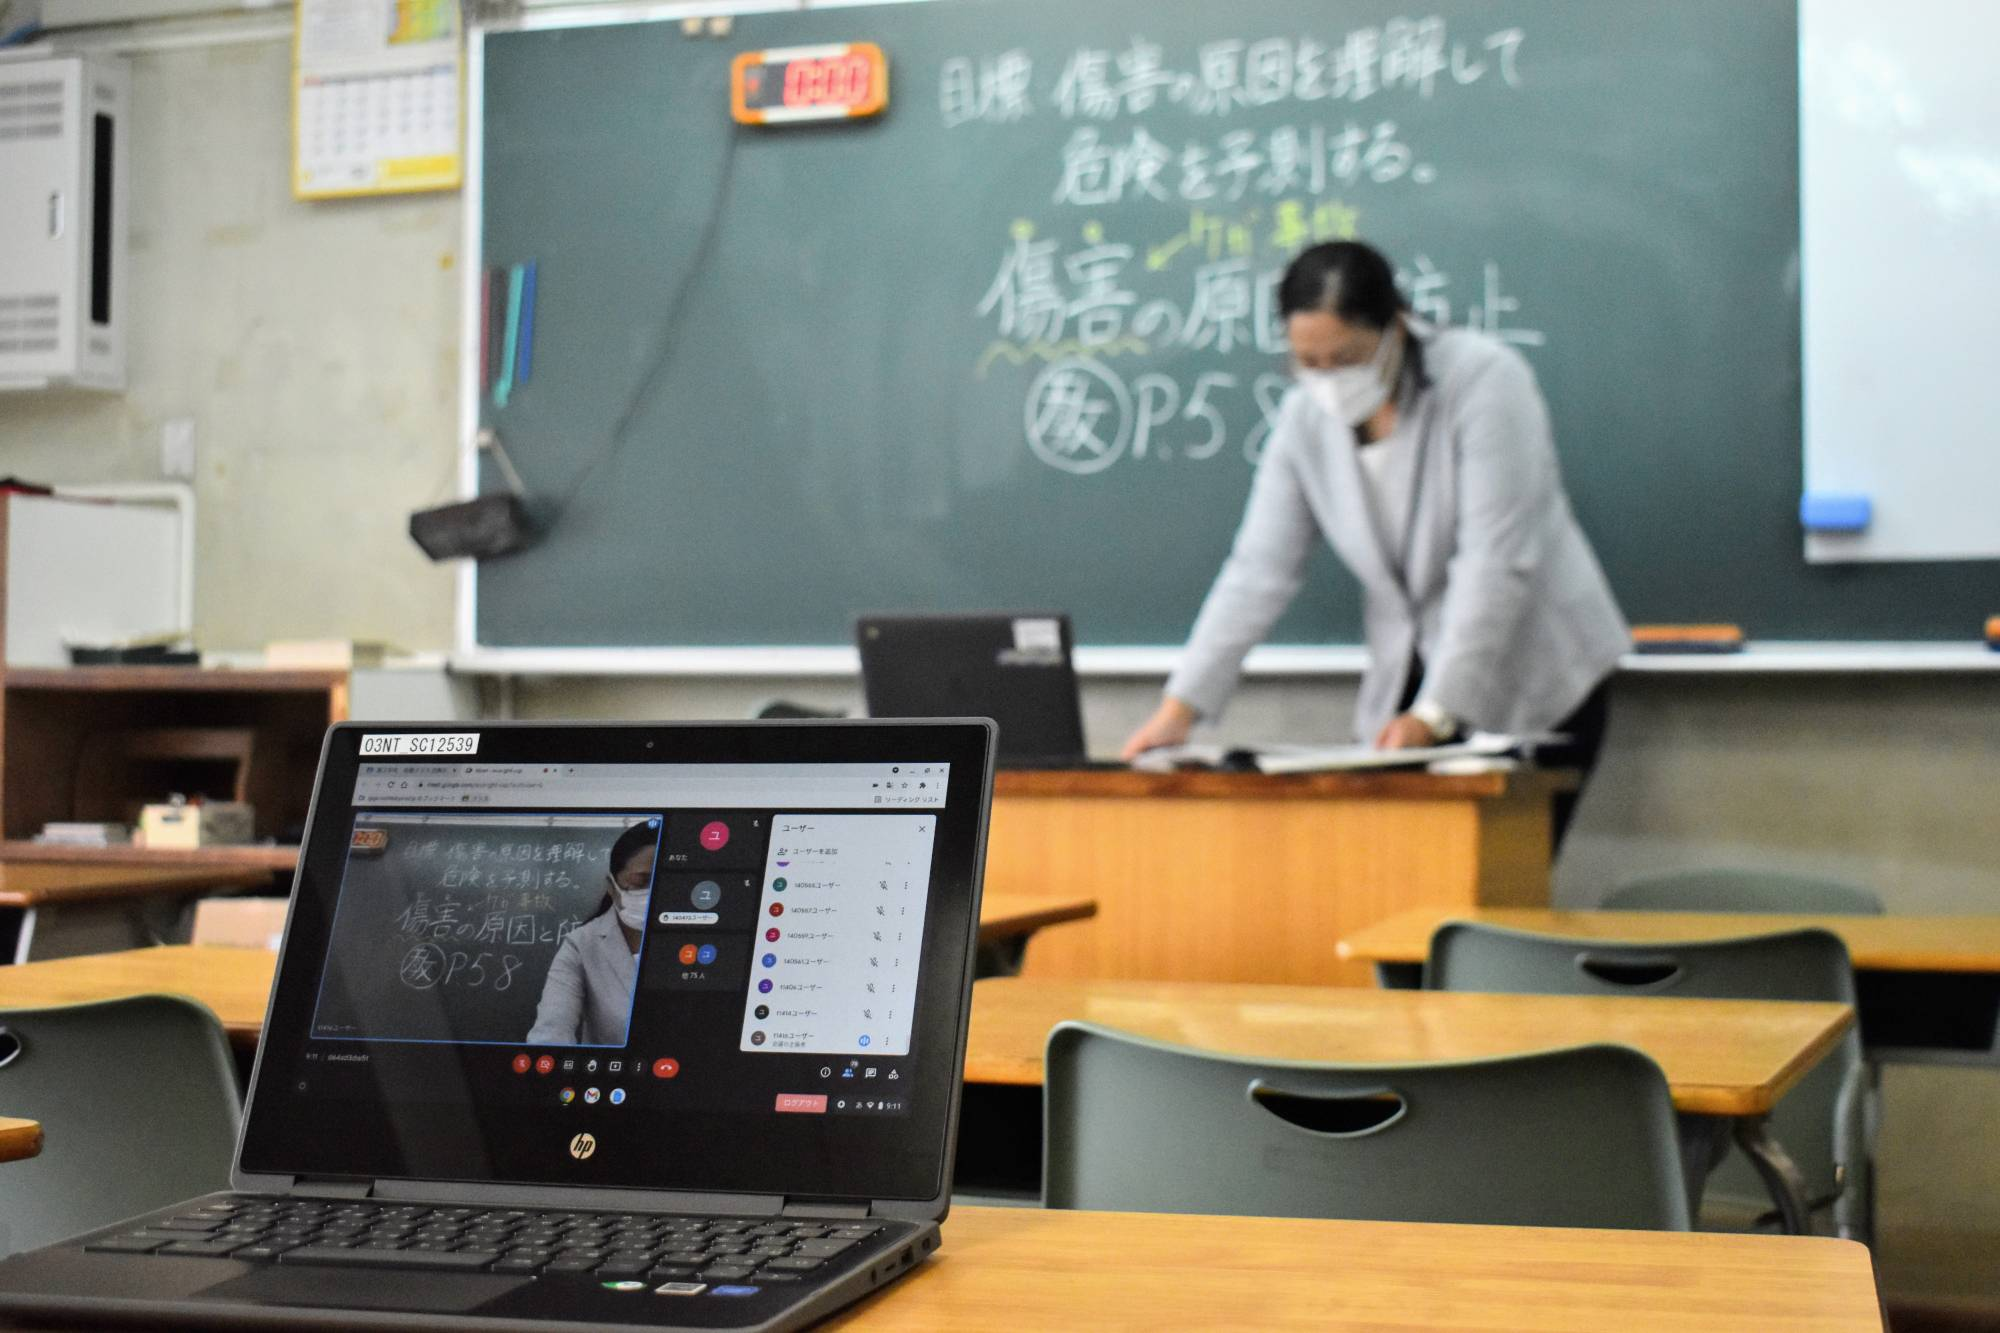 Physical education teacher Sachiko Yui holds her class online. For her and other teachers specializing in practical subjects, the online format is far from being an alternative to their usual teaching methods. | TOMOHIRO OSAKI